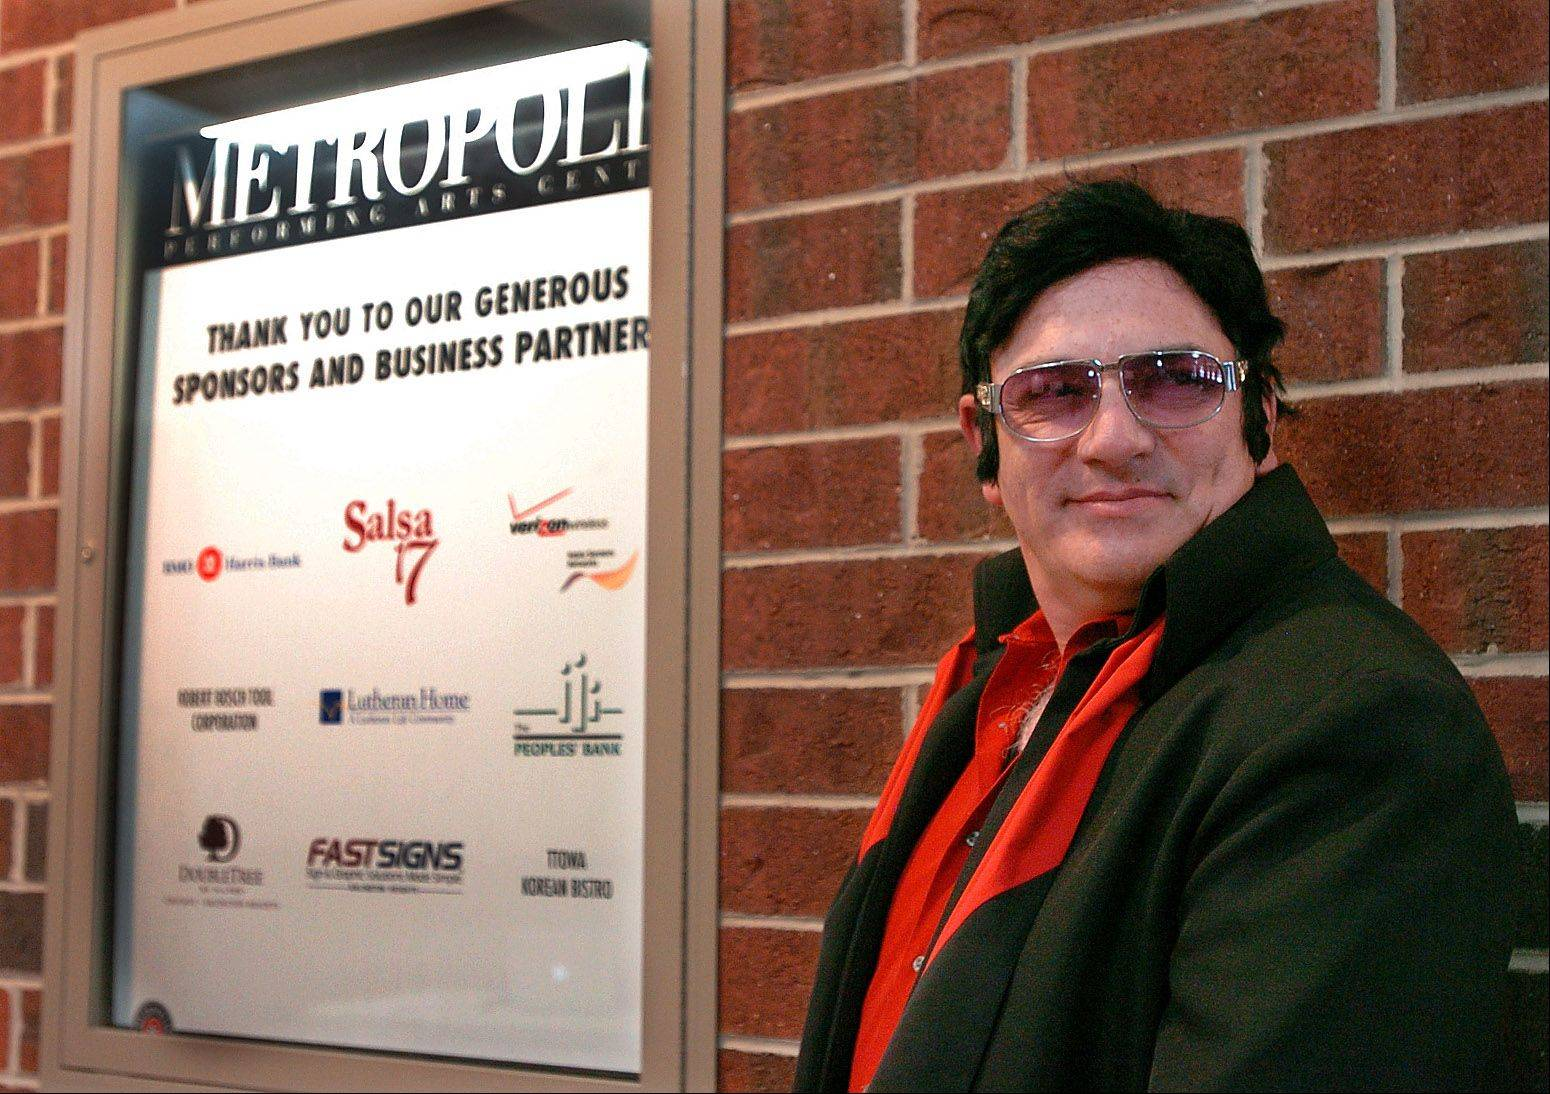 Elvis impersonator John Peterson of Schaumburg awaits his turn to audition for Suburban Chicago's Got Talent at the Metropolis Performing Arts Centre.